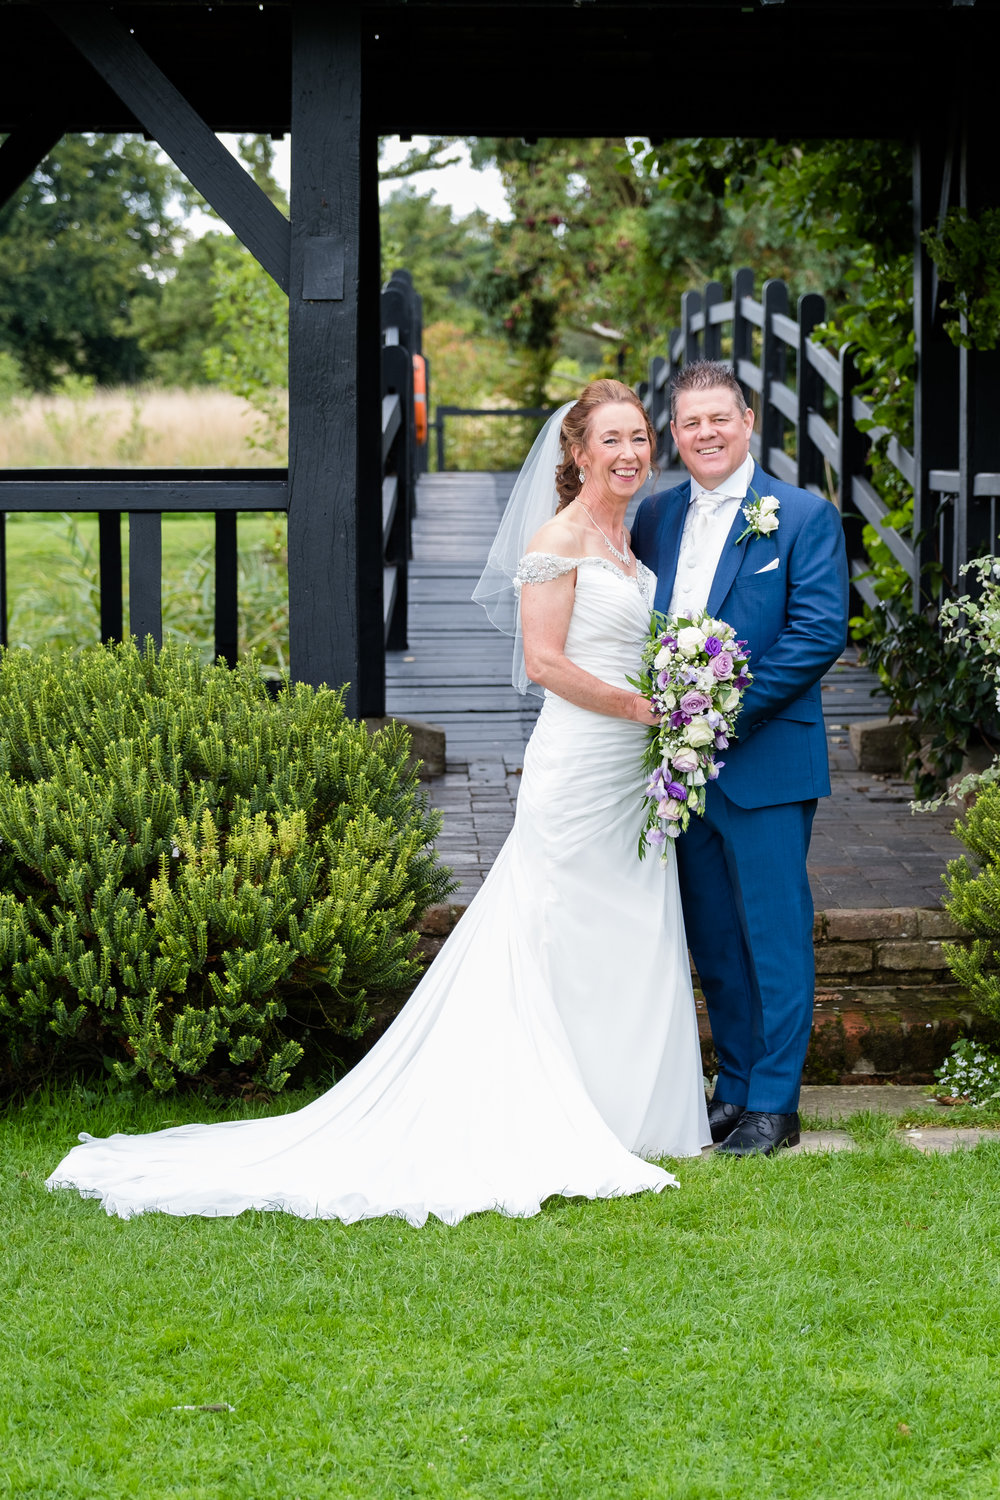 Prested Hall wedding photographer, Essex wedding photography